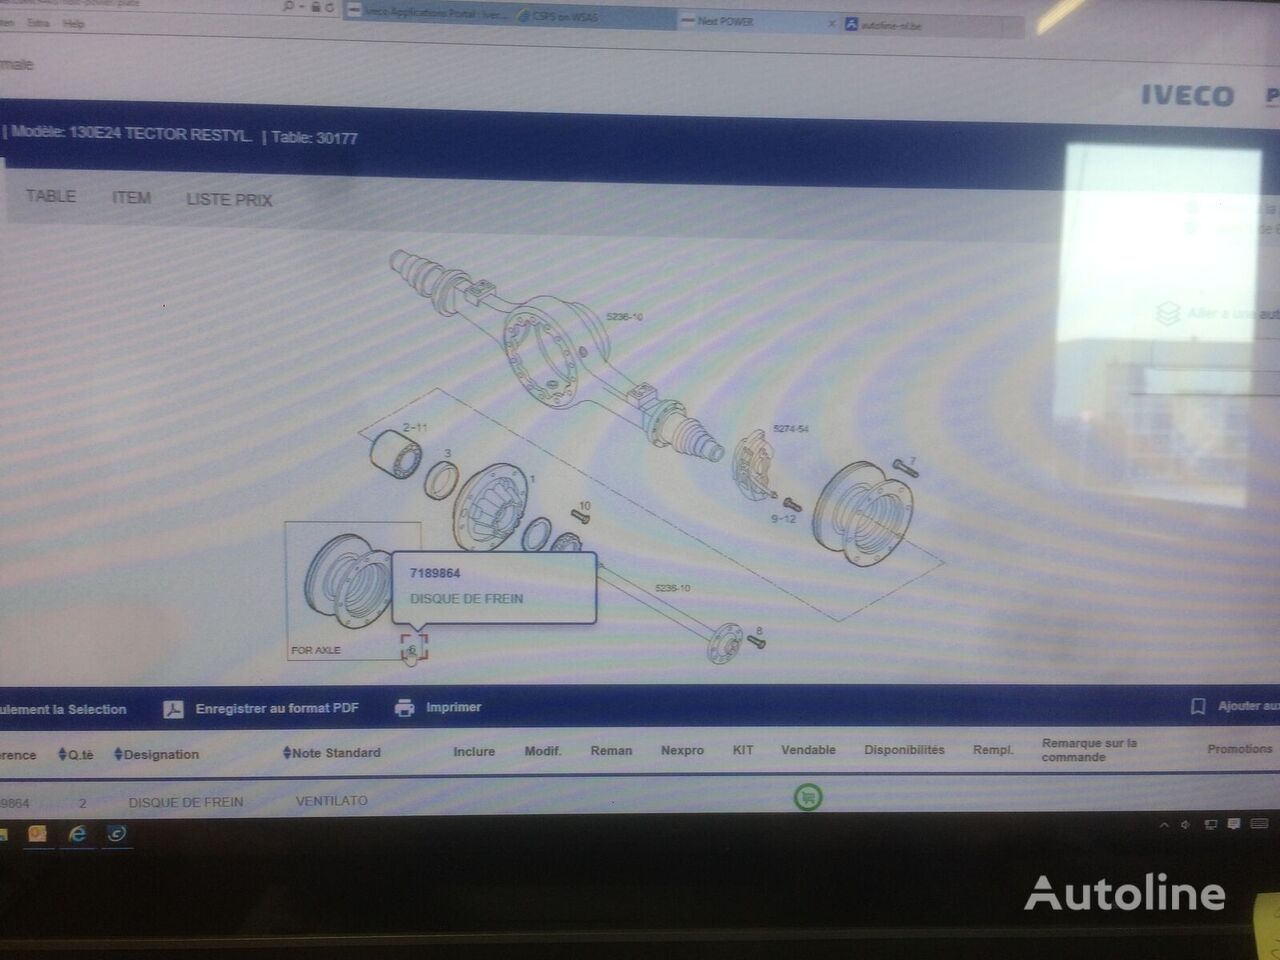 new IVECO brake disk for IVECO EUROCARGO ML130 truck